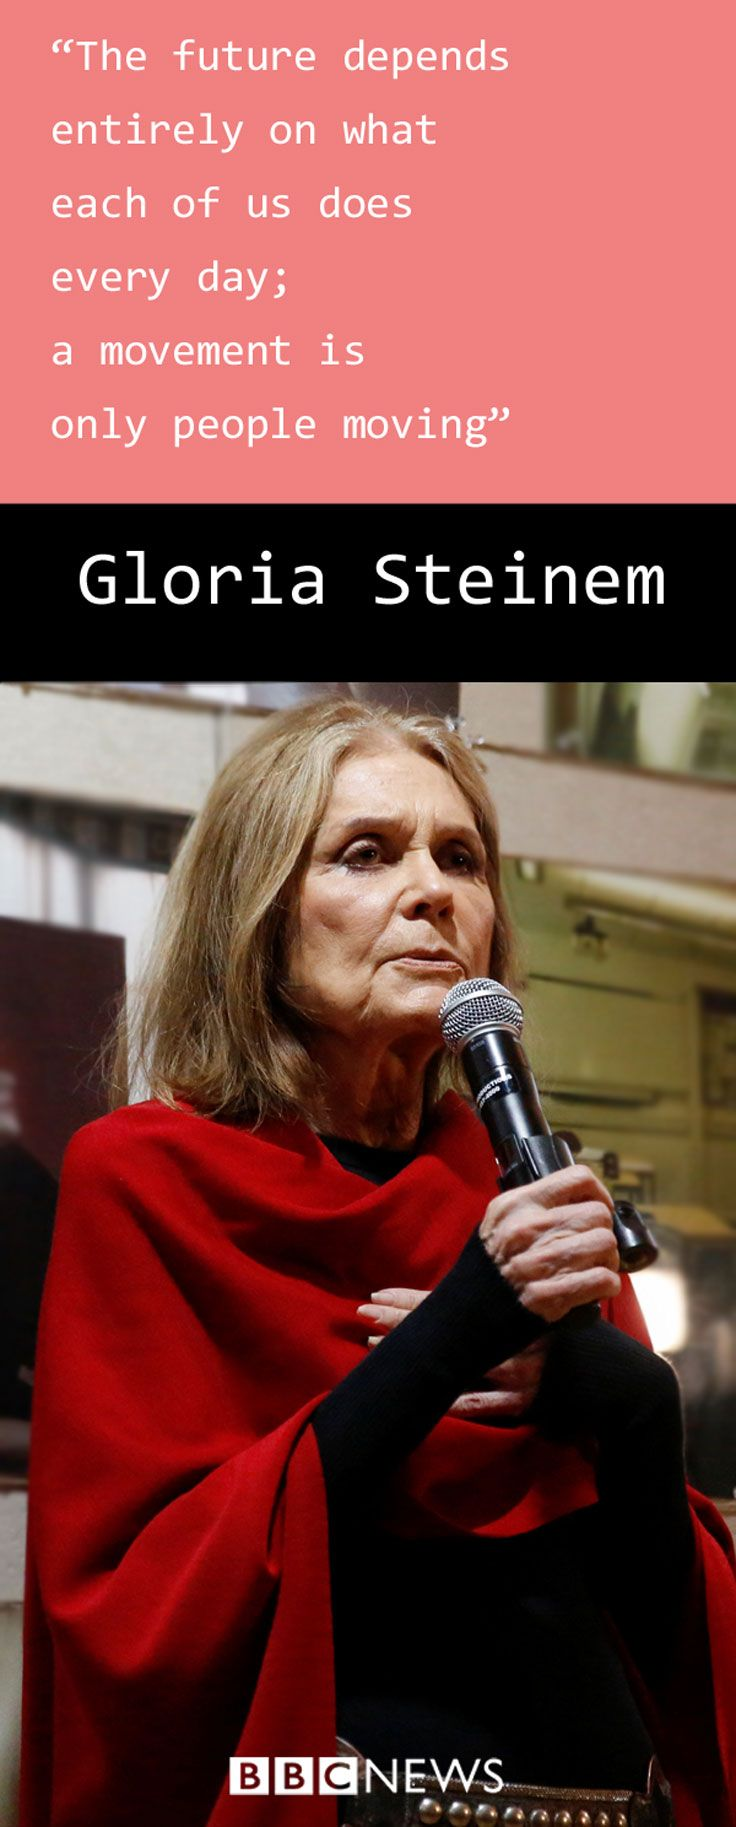 Gloria Steinem first rose to prominence in America as a writer and activist in the 1960s fighting for gender equality and women's rights. In 1972 she co-founded Ms Magazine. Today she works in the US and internationally with organisations such as Equality Now, but how much of what she fought for has been achieved?